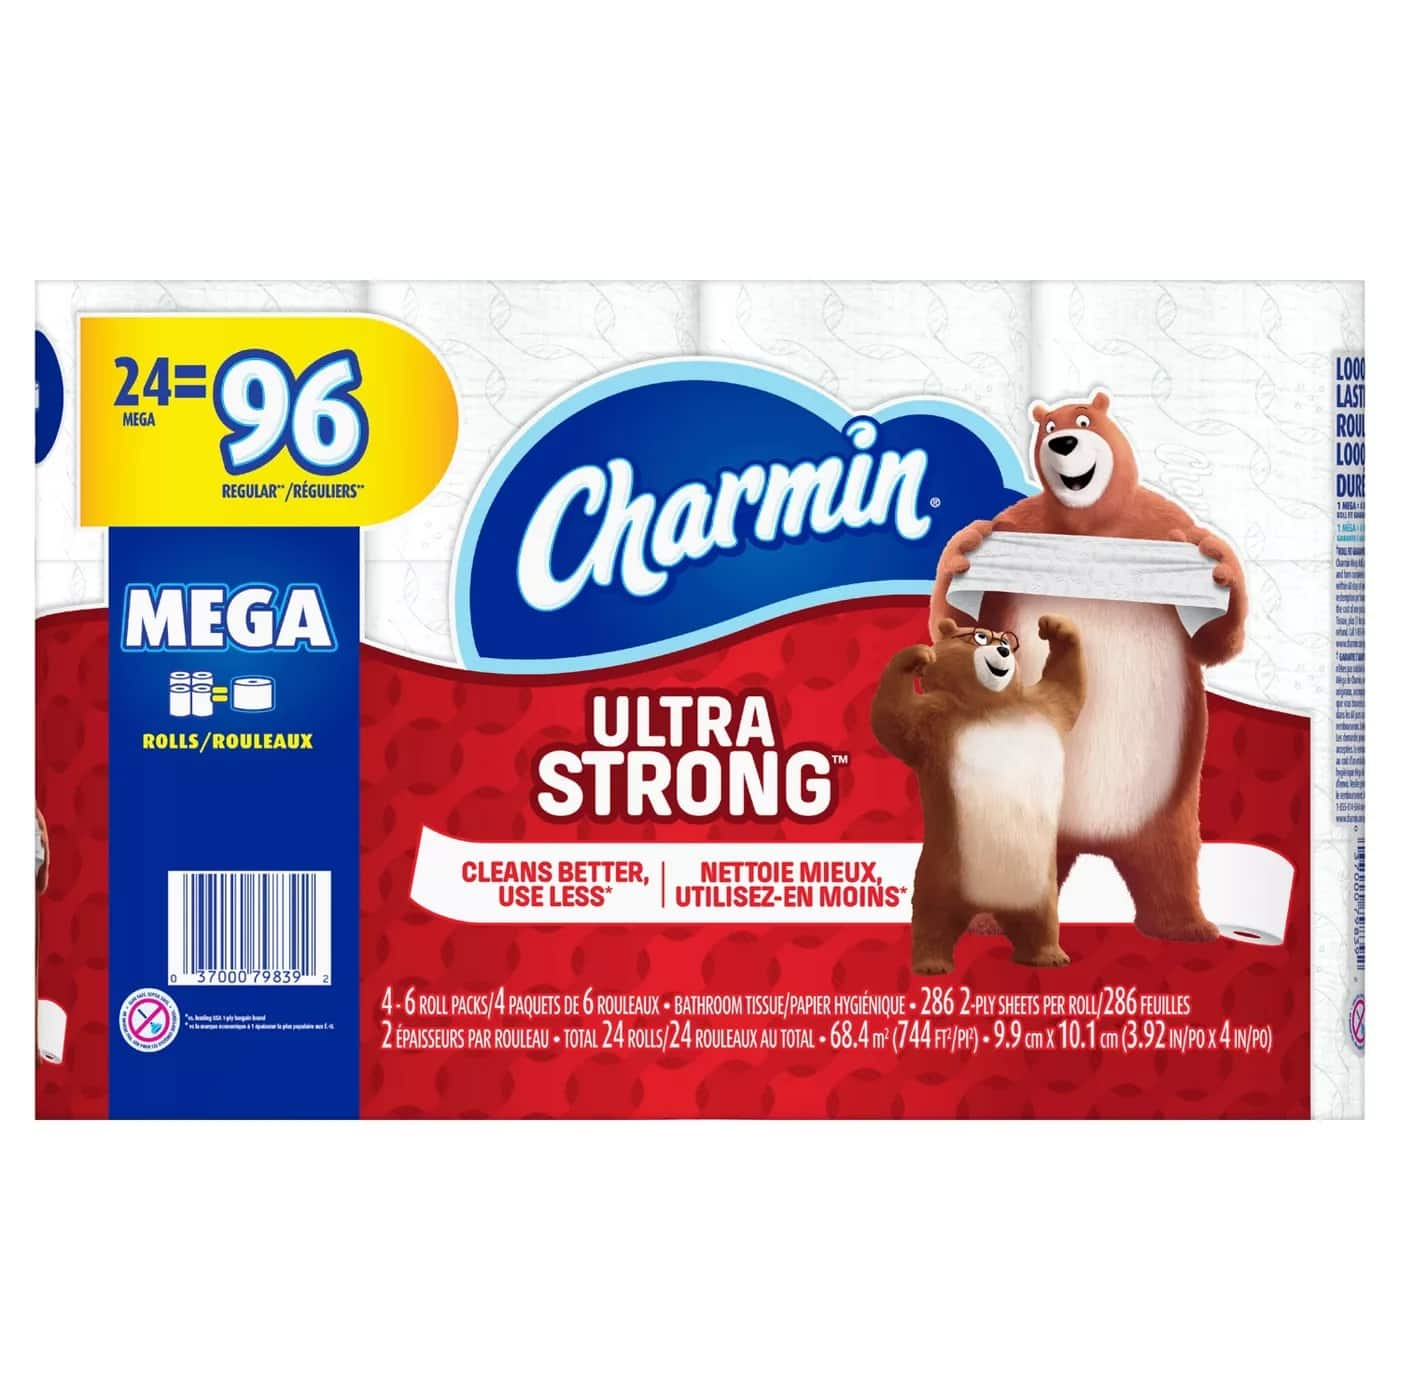 48-Ct Charmin Ultra Soft/Ultra Strong Mega Rolls Toilet Paper + $10 Target GC $40.38(2 cents/sq.ft after GC) + Free Store Pickup